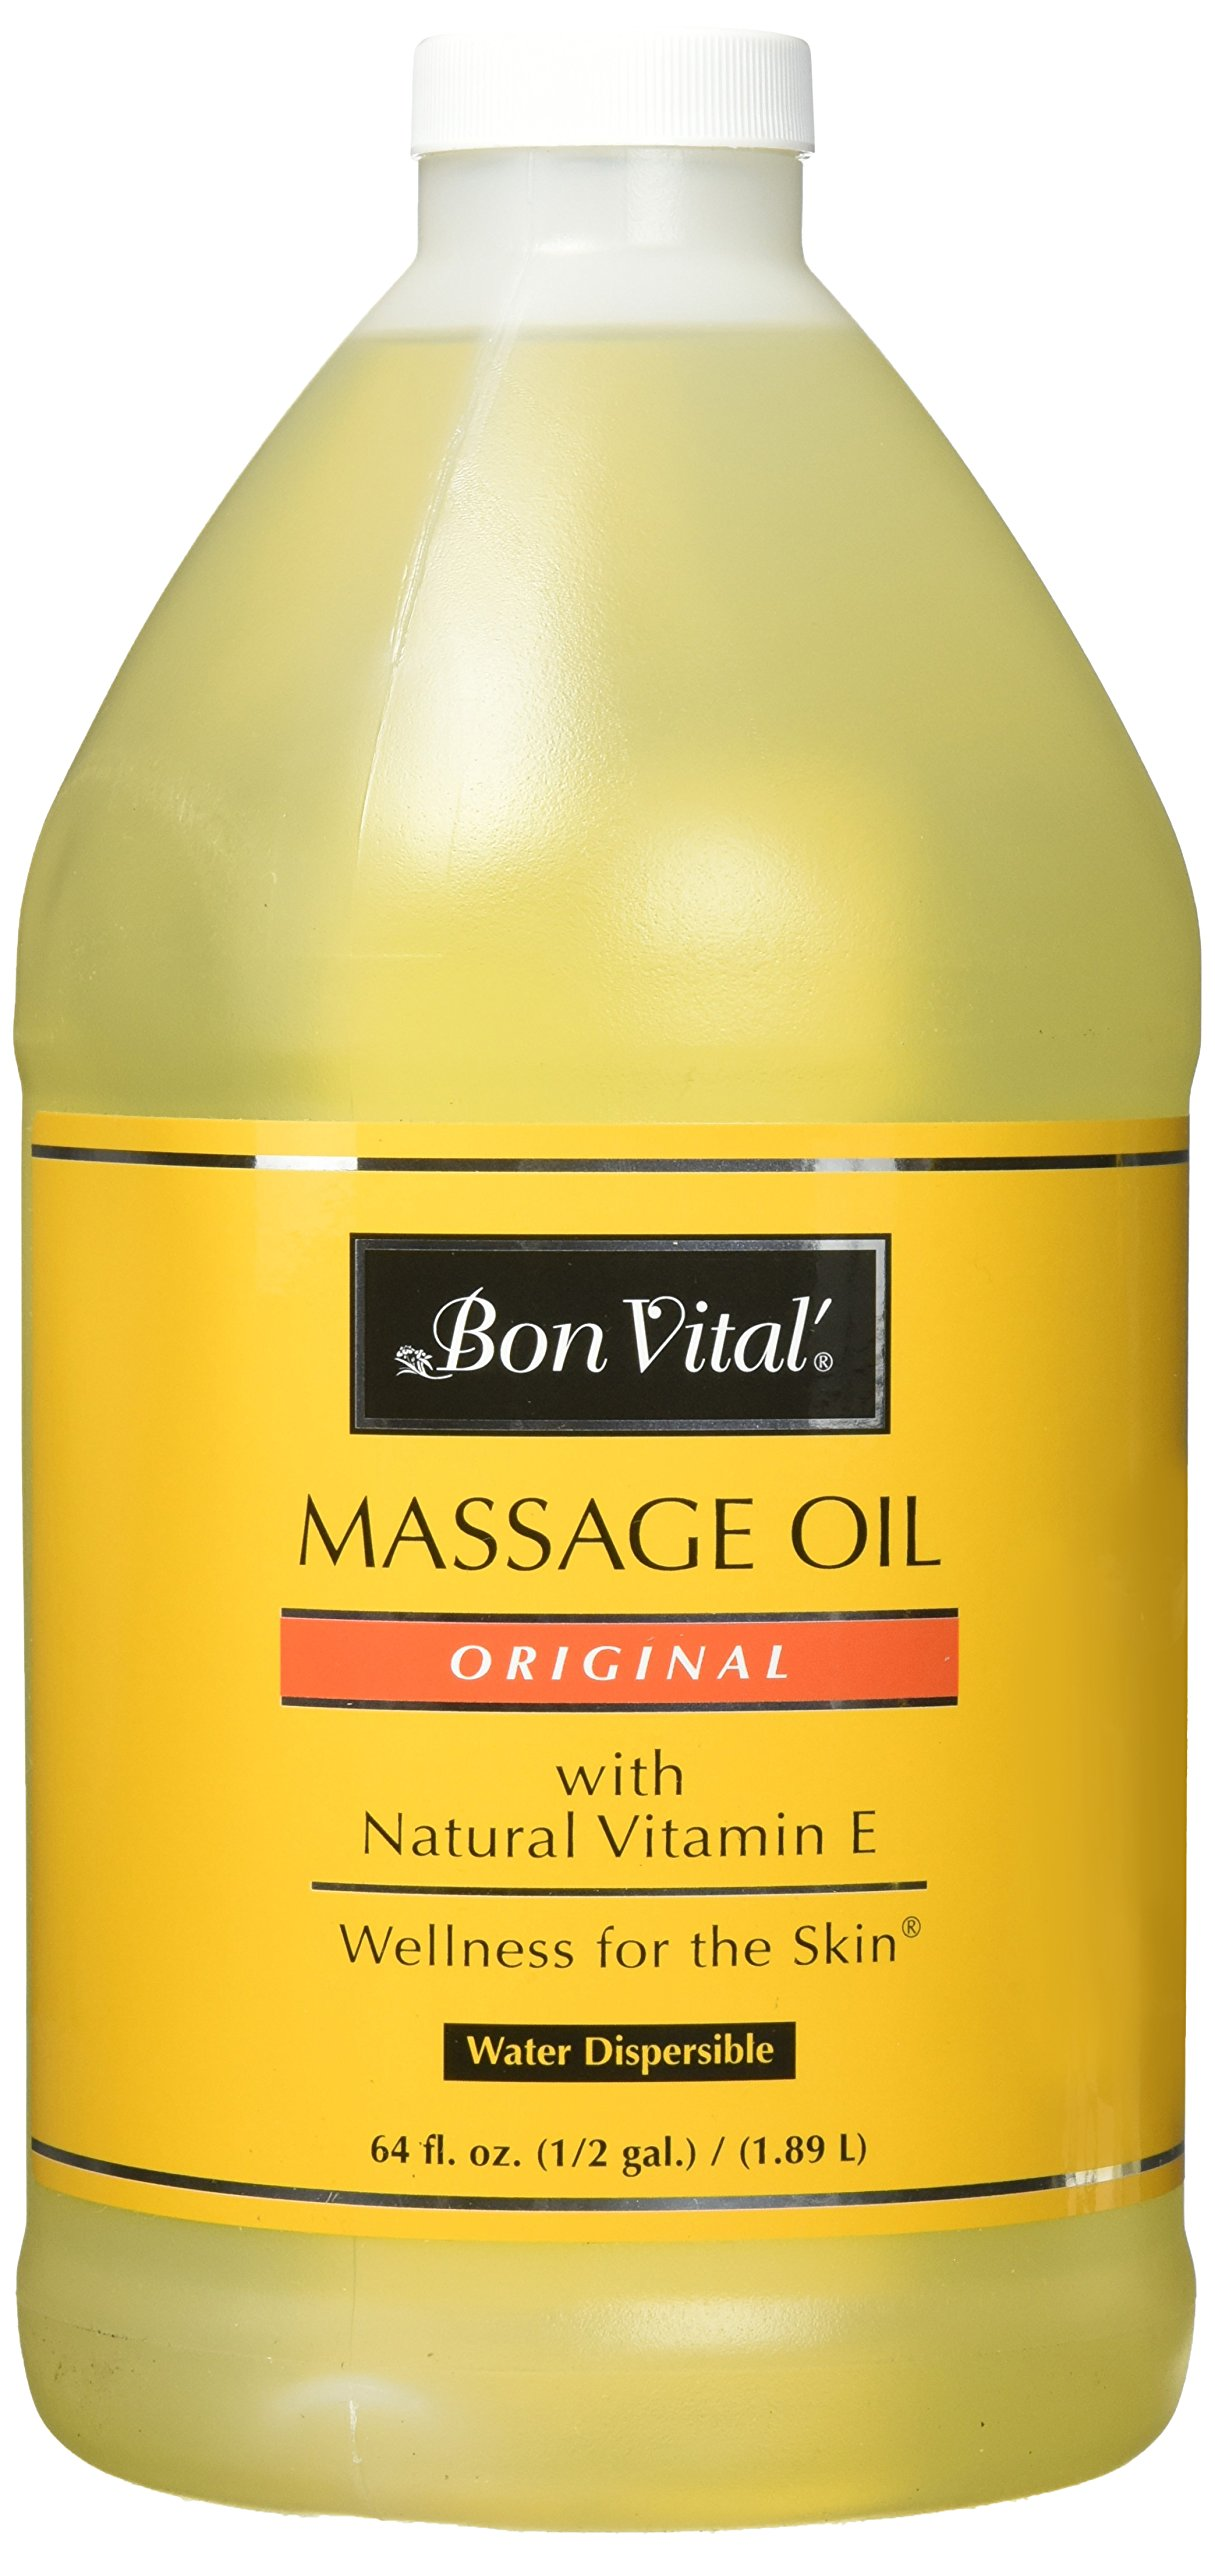 Bon Vital' Original Massage Oil for a Versatile Massage Foundation to Relax Sore Muscles & Repair Dry Skin, Most Requested Best Massage Oil on Market, Unbeatable Consistency and Quality, 1/2 Gallon by Bon Vital